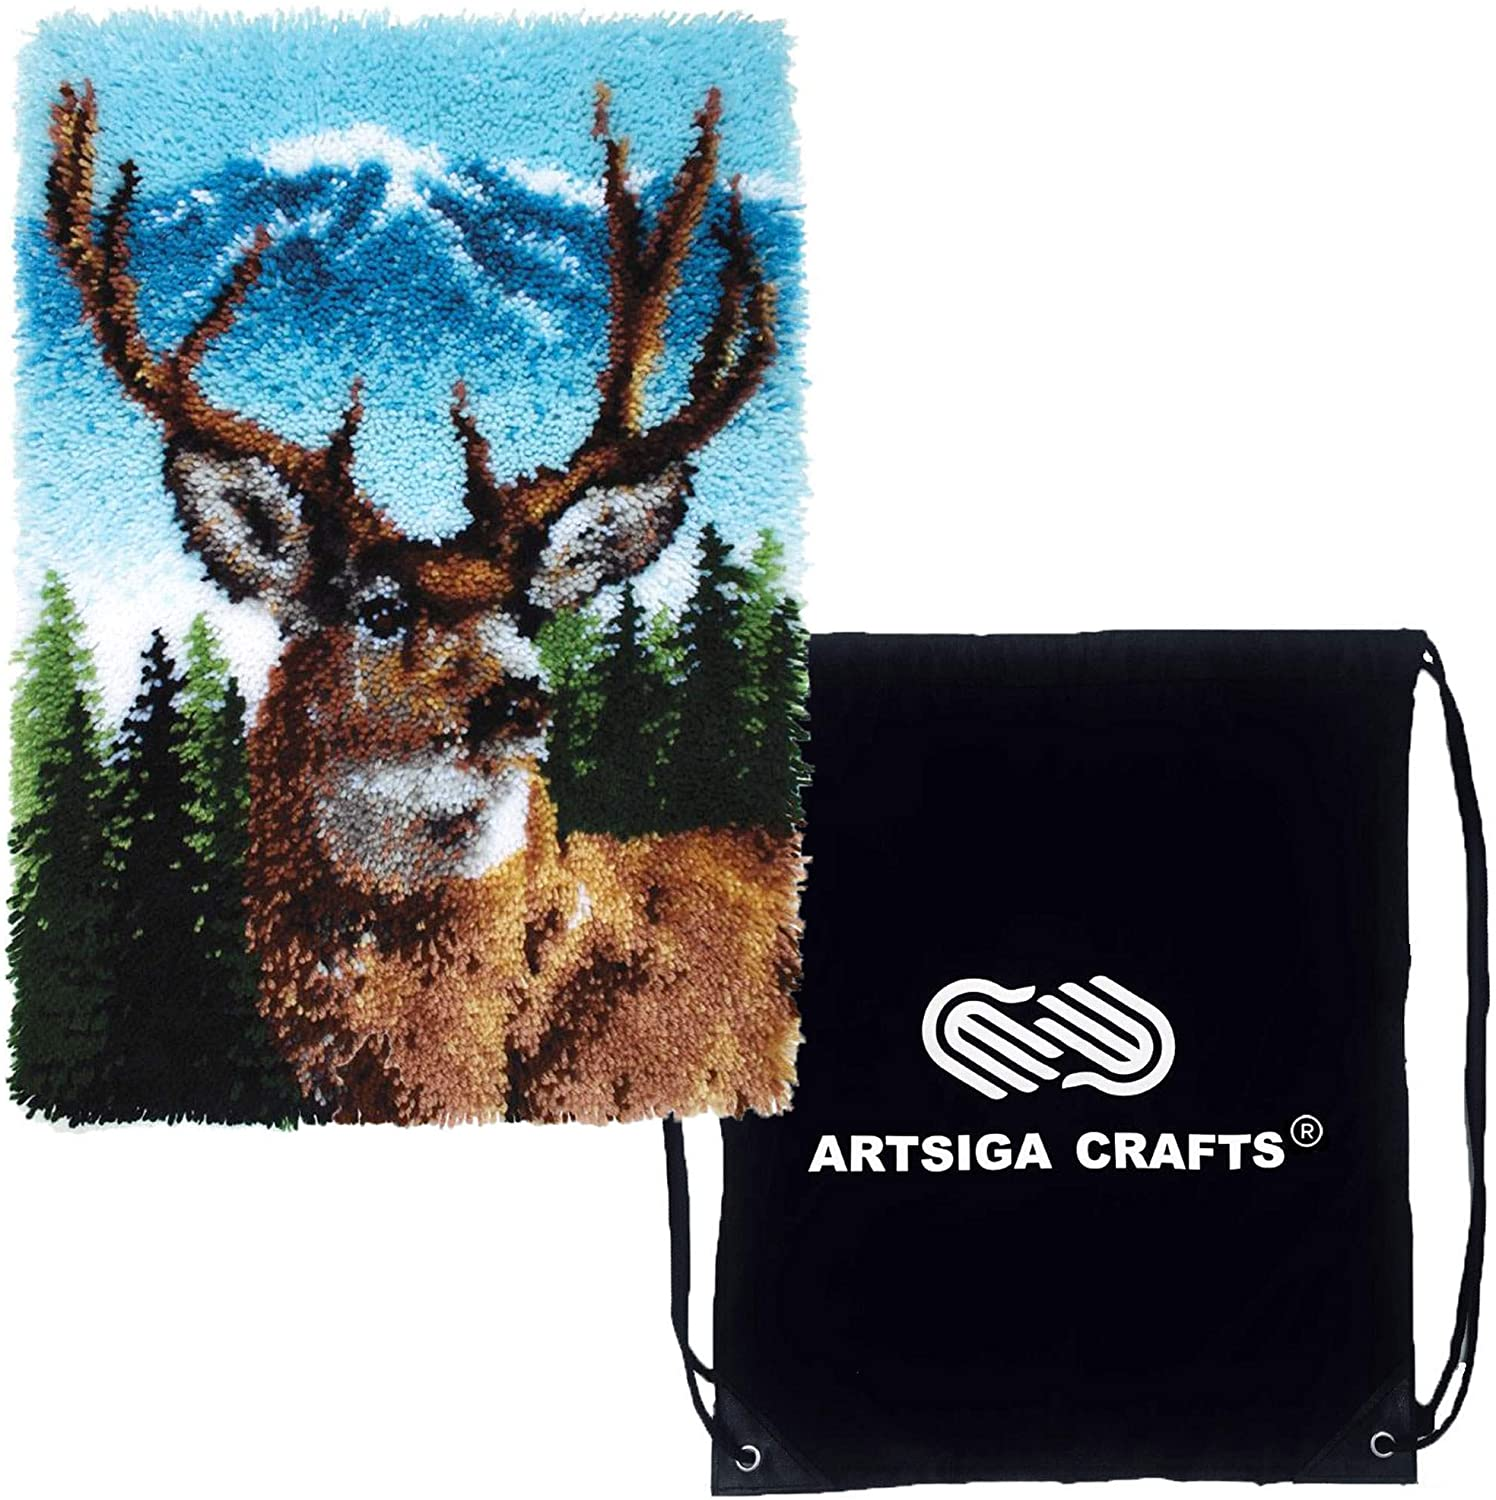 Caron Wonderart Classic Latch Hook Kit 20 x 30 inches (Finished Size) Deer Bundle with 1 Artsiga Crafts Project Bag (426403)